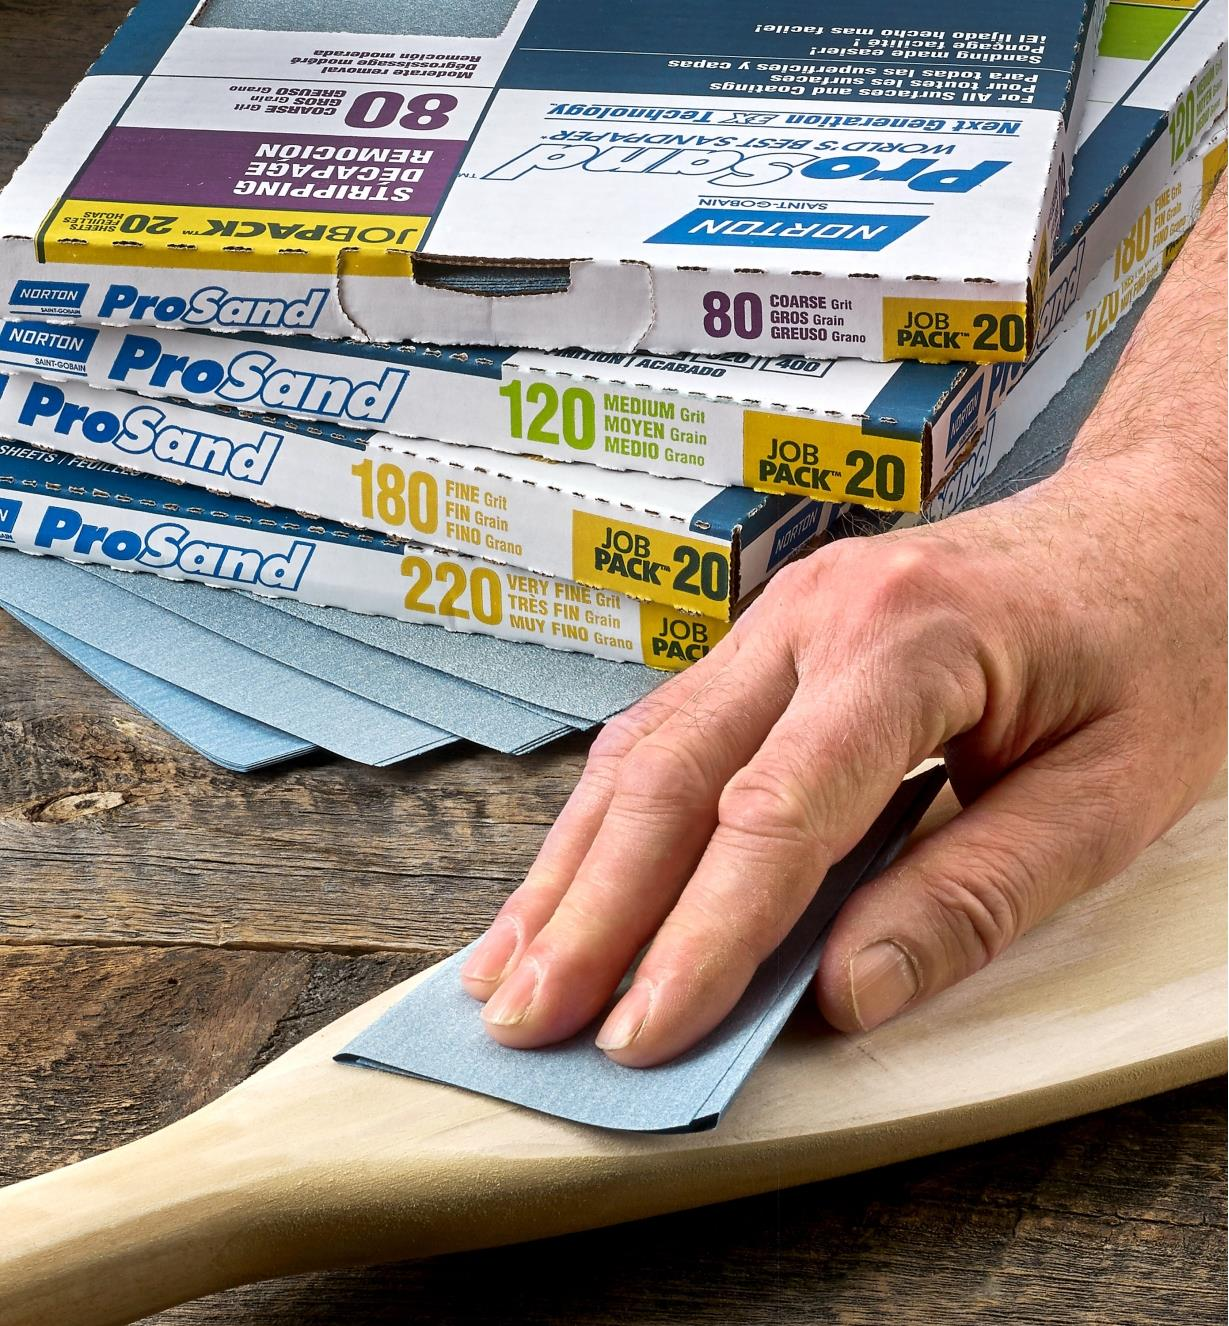 A woodworker sands a wooden canoe paddle with a sheet of Norton ProSand 3X Sandpaper